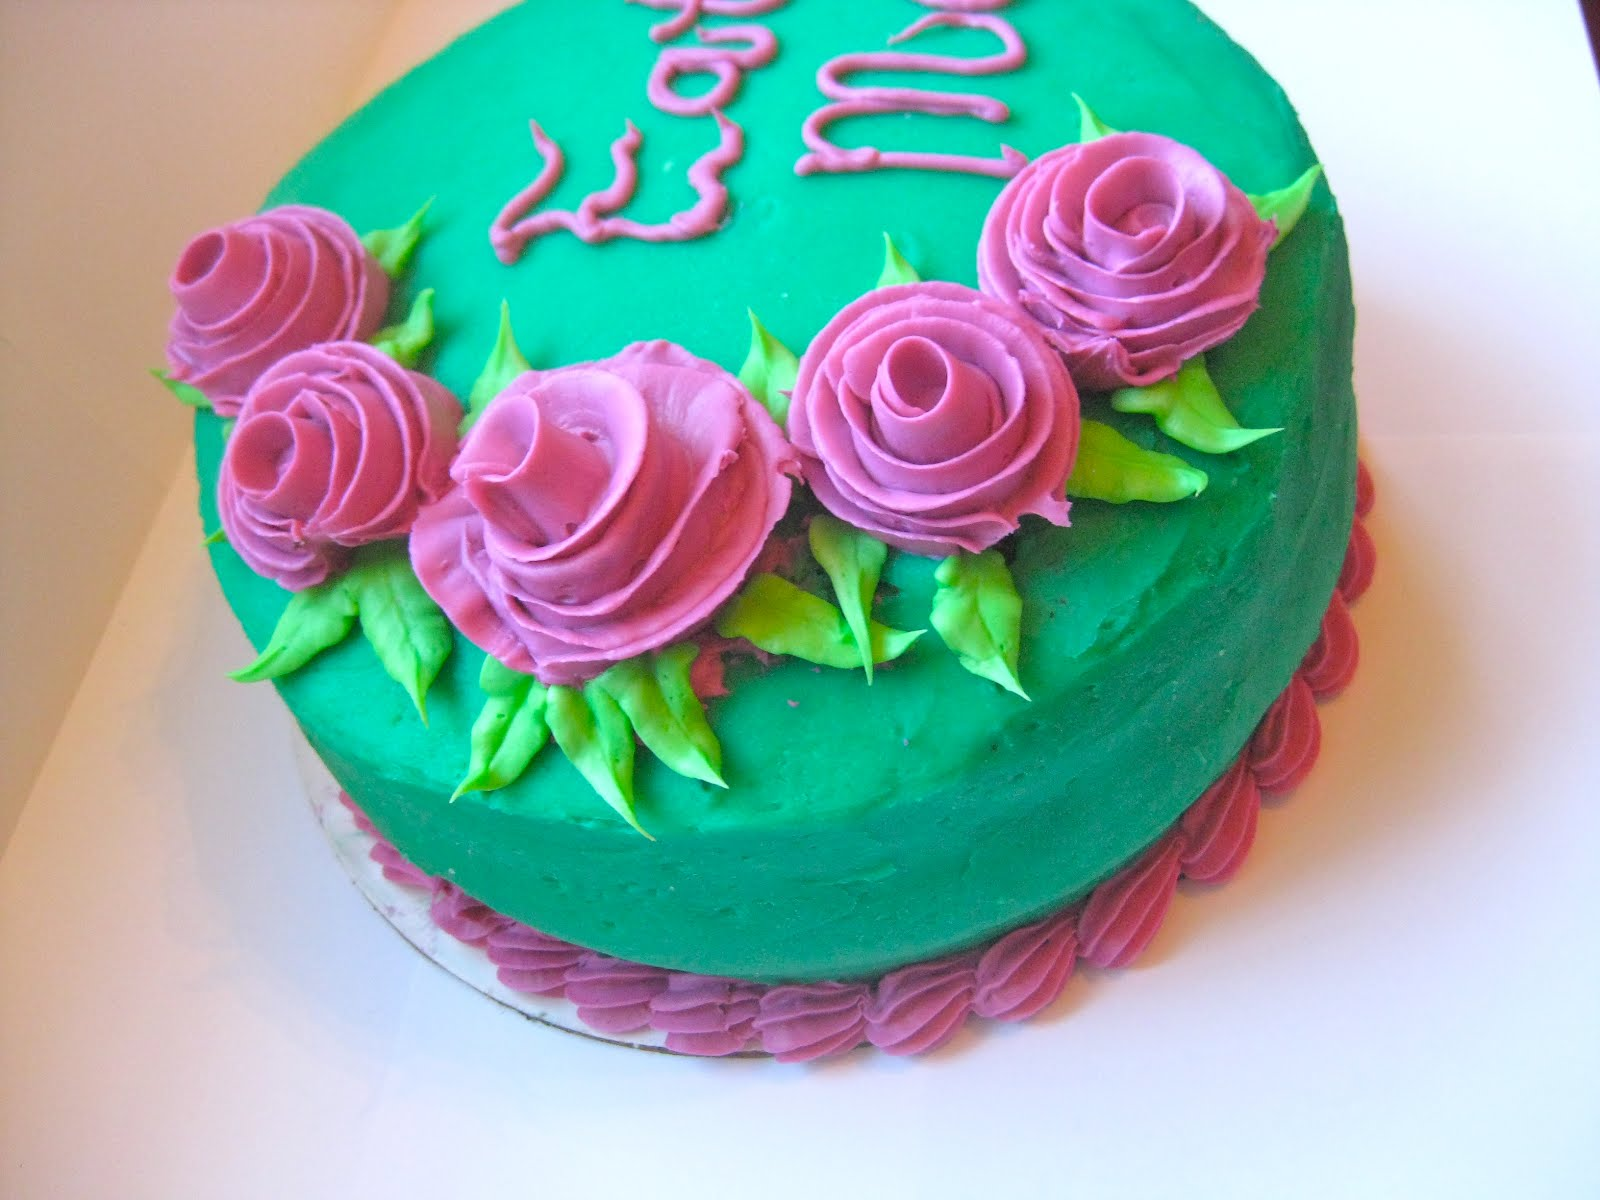 Wilton Cake Decorating Classes Uk : Pixie Crust: